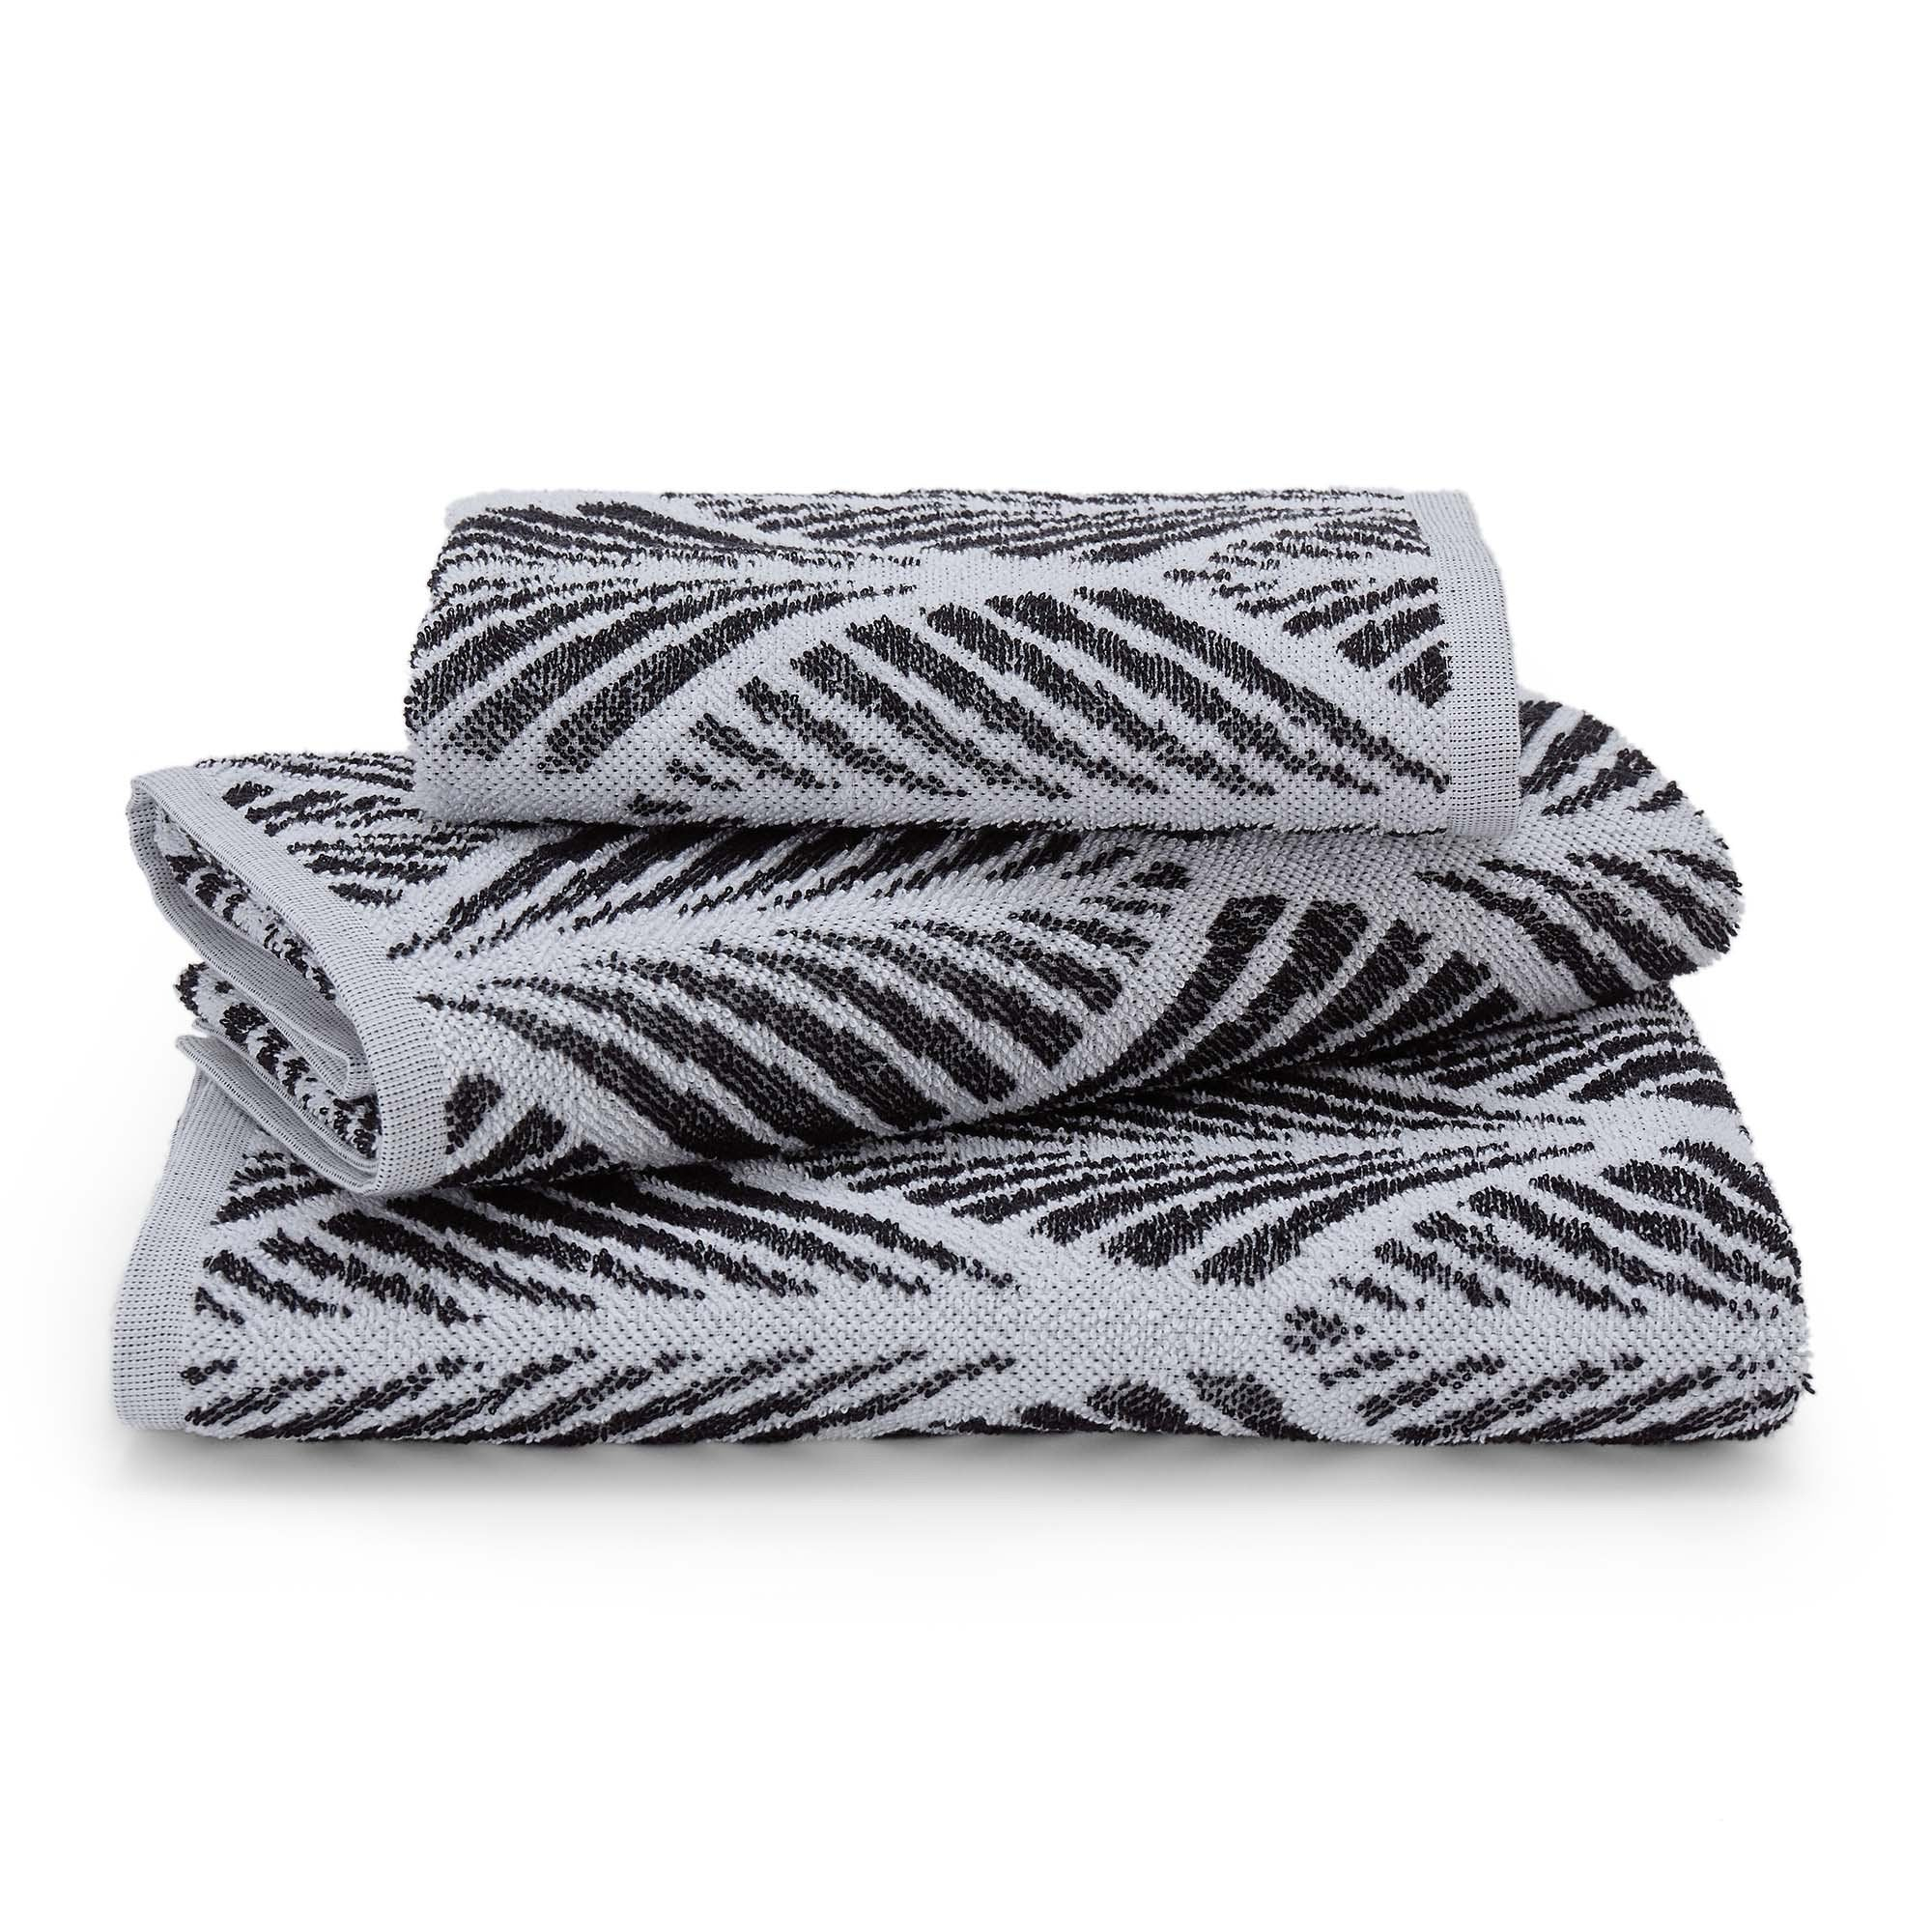 Coimbra hand towel, black & white, 100% cotton